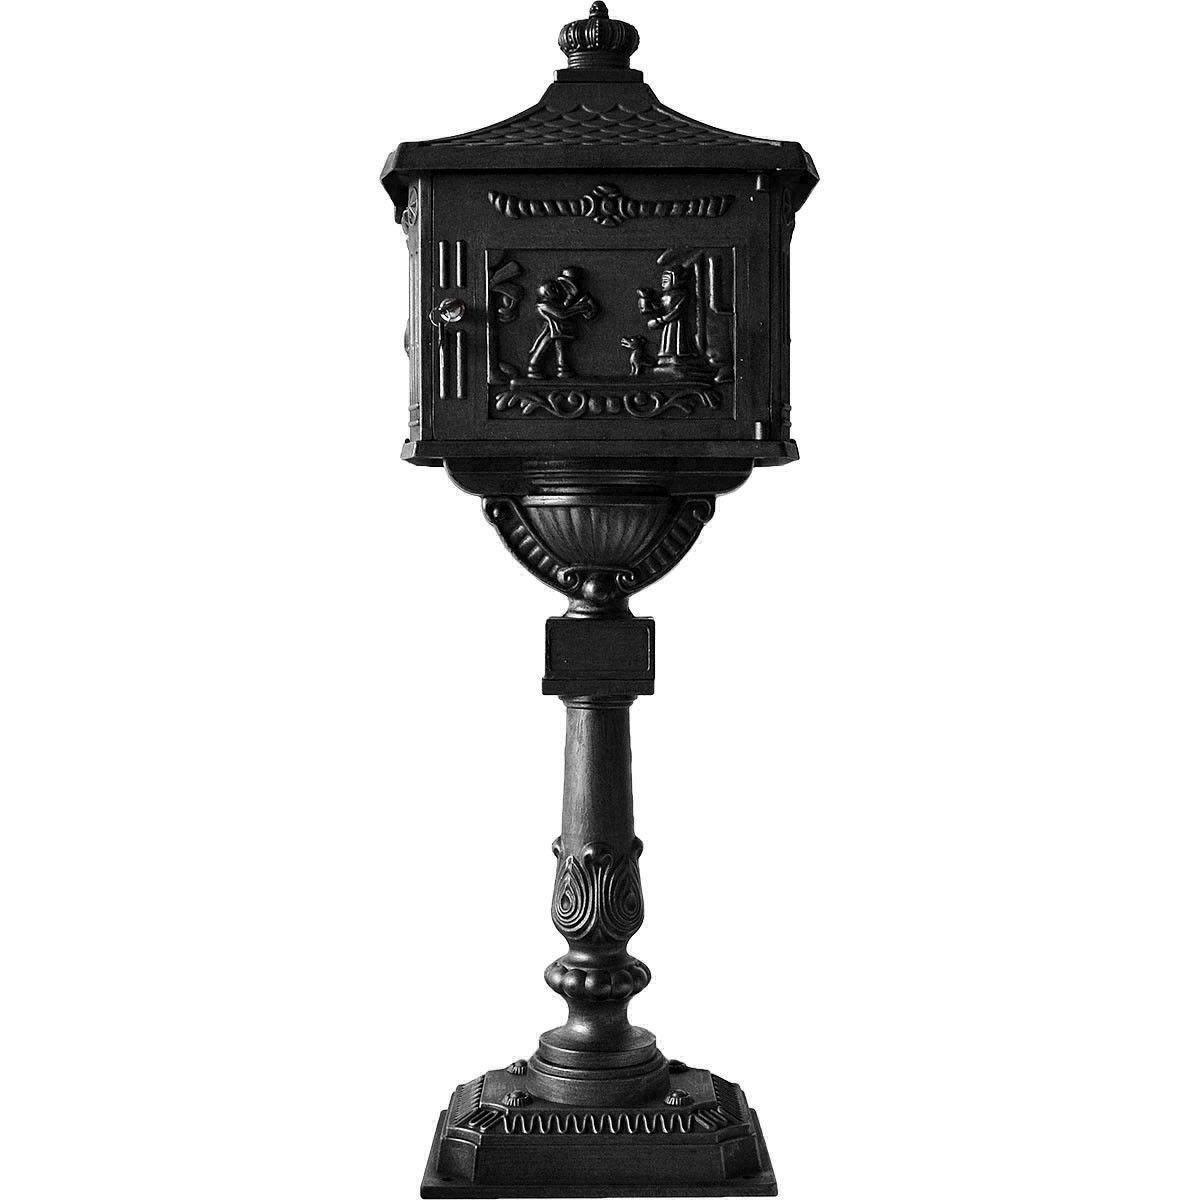 Wakrays Mail Box Heavy Duty Mailbox Postal Box Security Cast Aluminum Vertical Pedestal (Black)